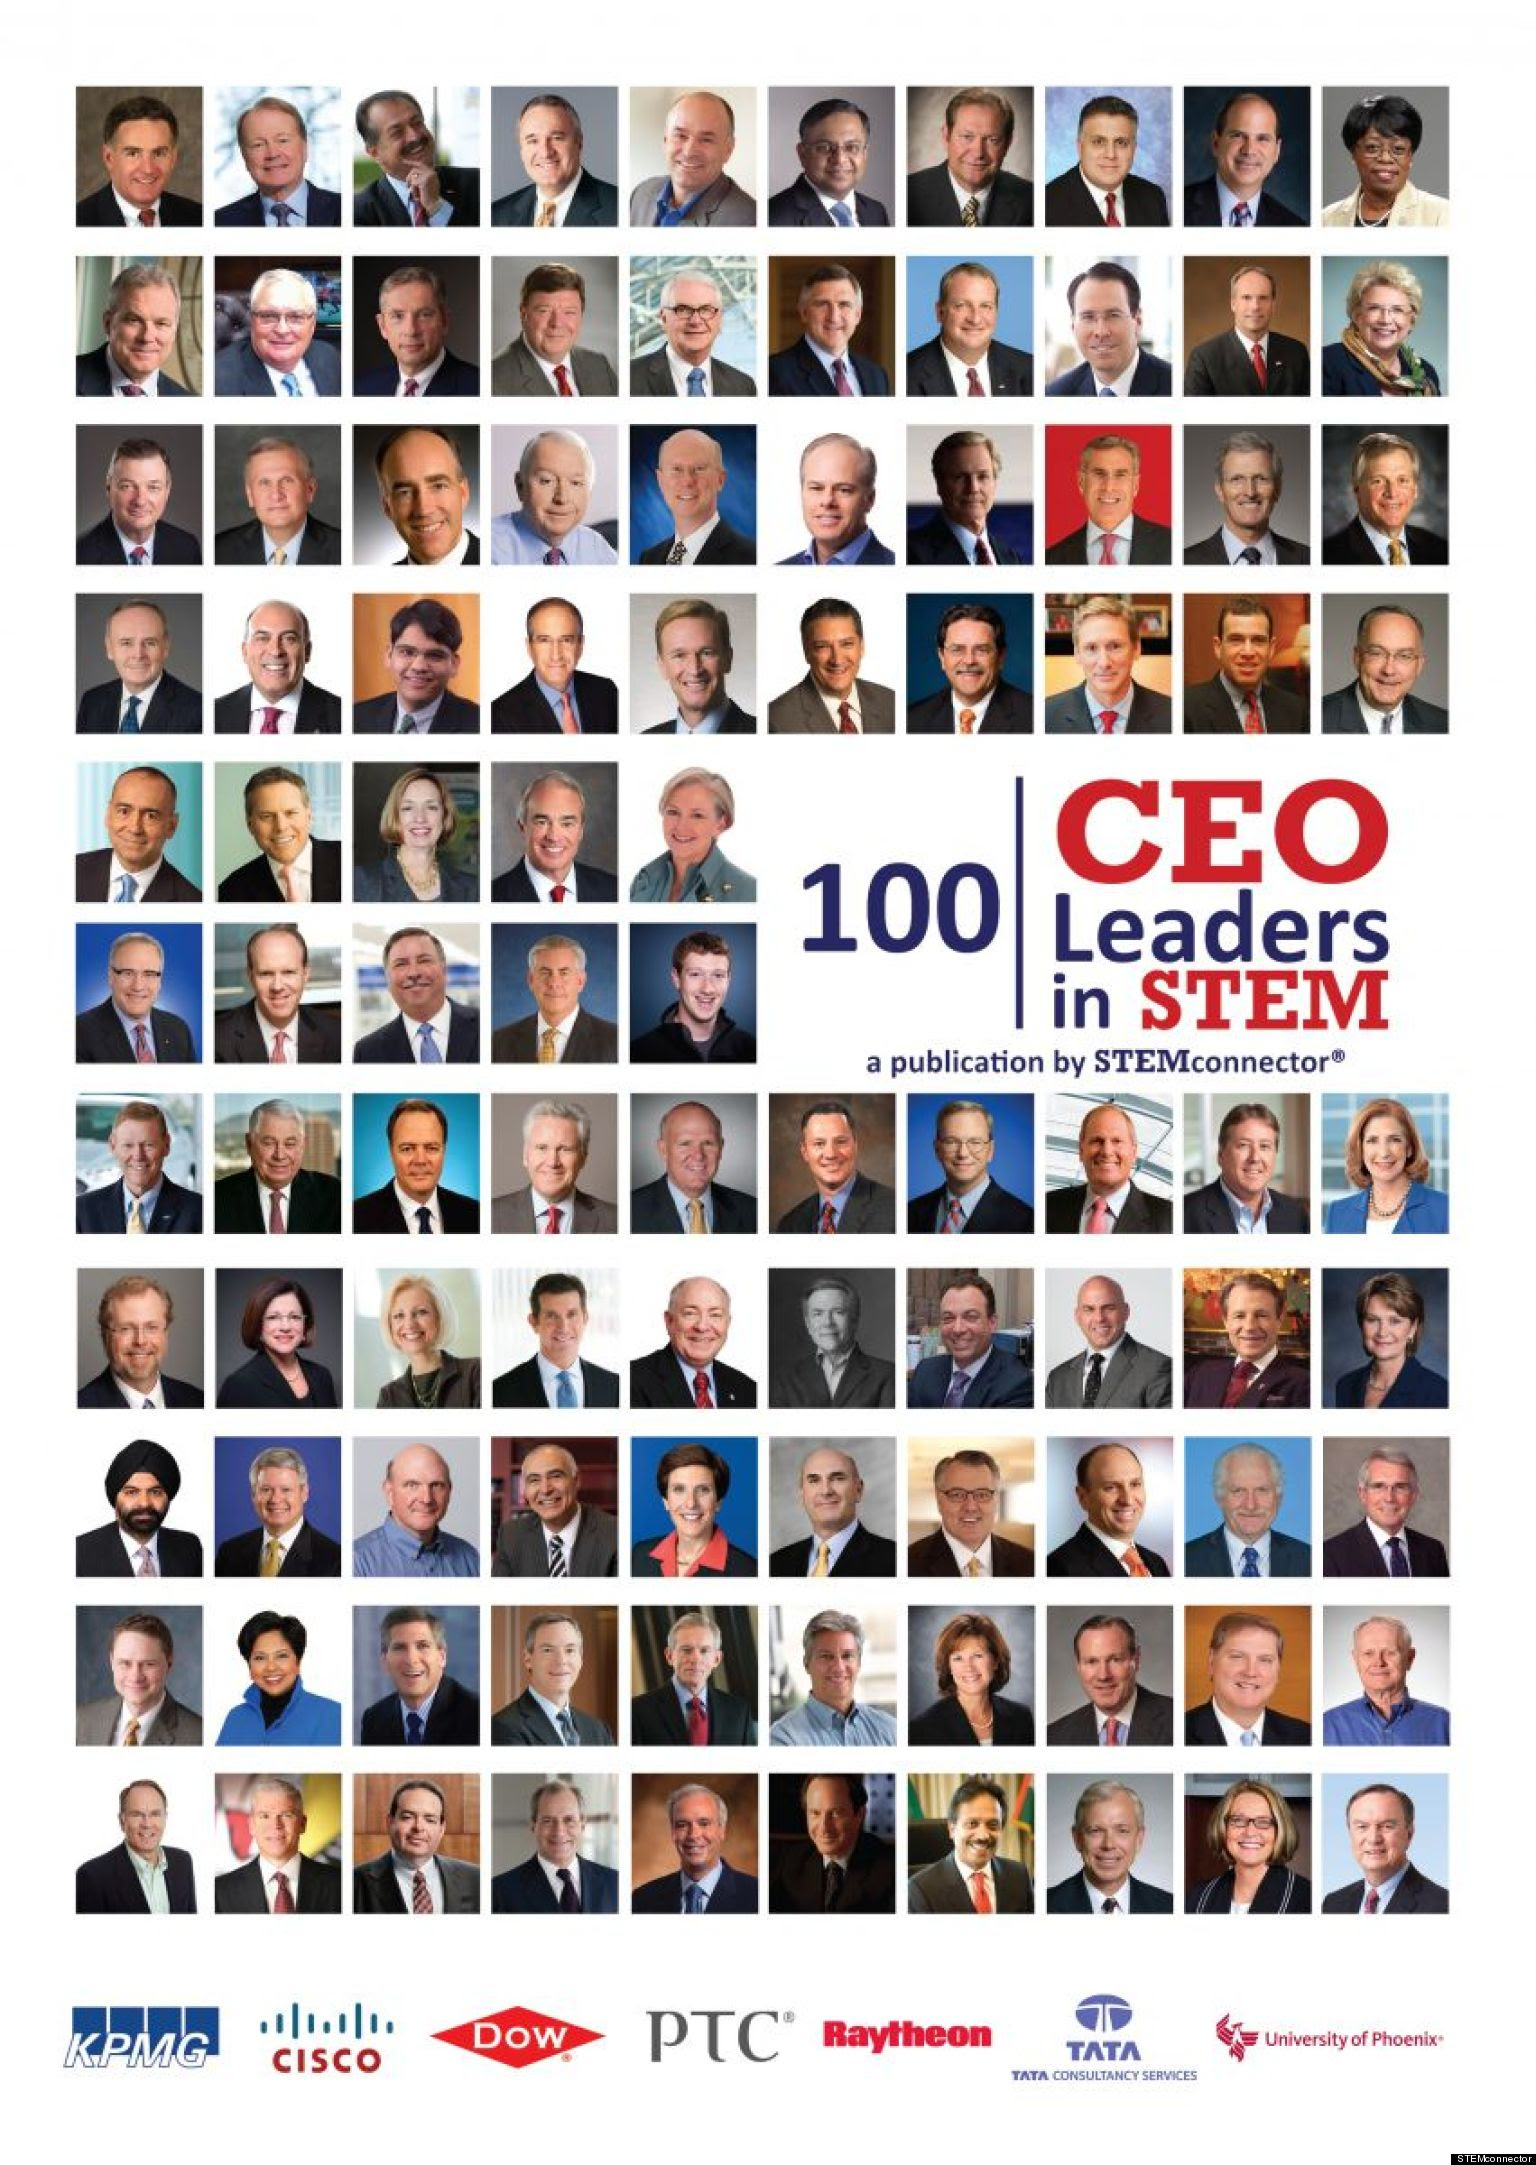 http://i.huffpost.com/gen/1186424/thumbs/o-CEO-LEADERS-TOP-100-facebook.jpg